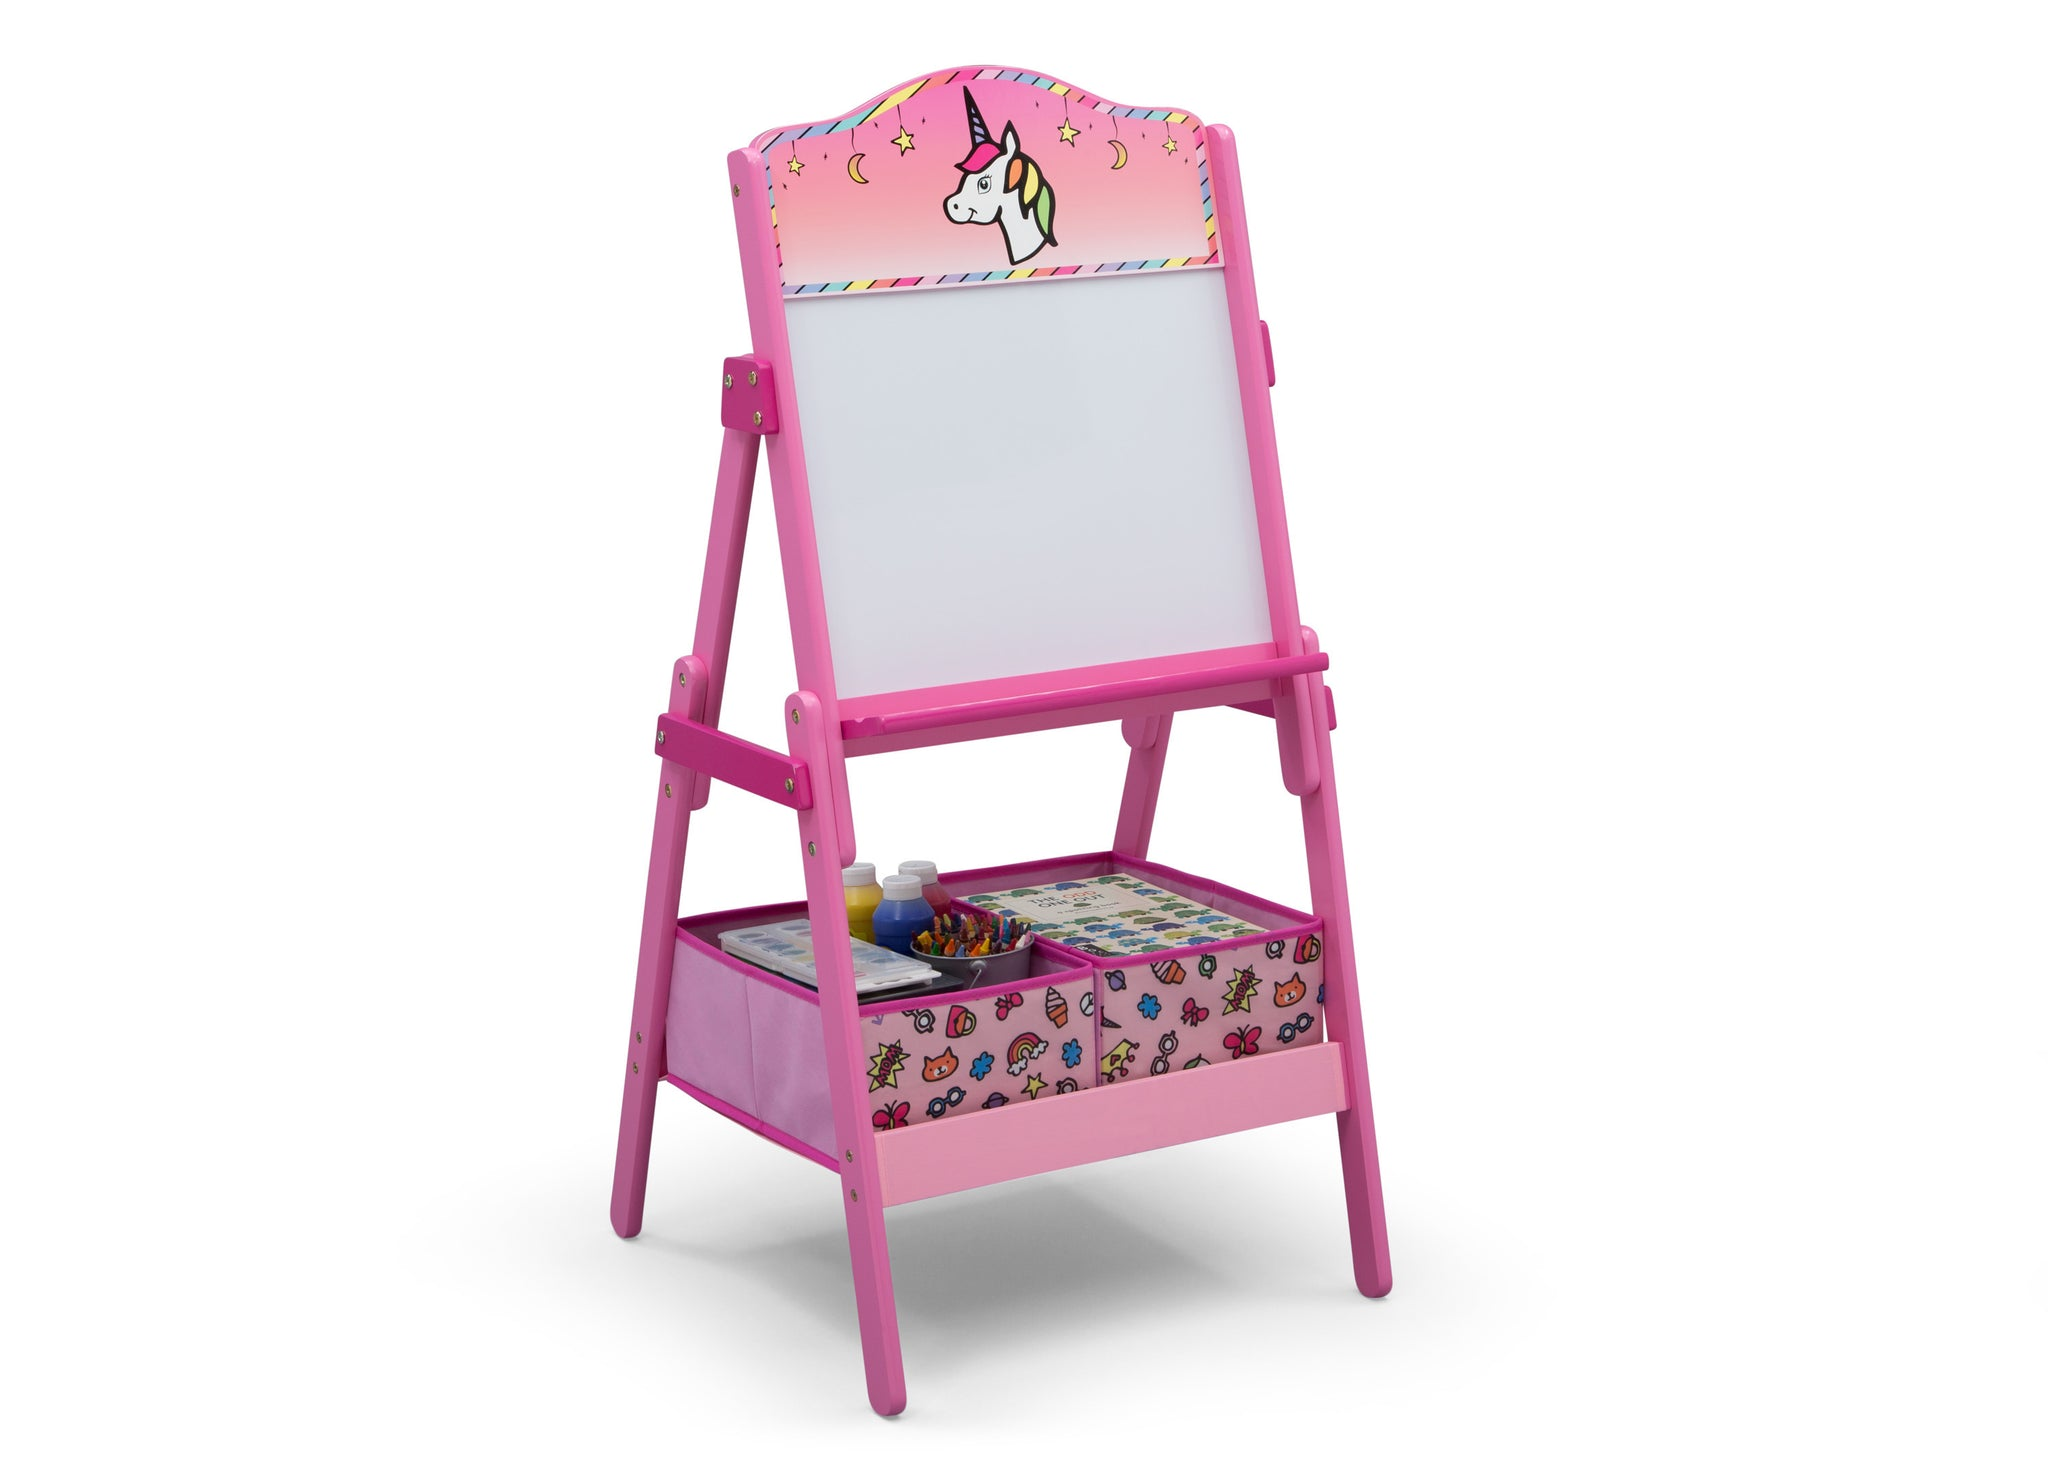 Delta Children Rainbow Dreams (1221) Wooden Activity Easel with Storage, Right Silo View